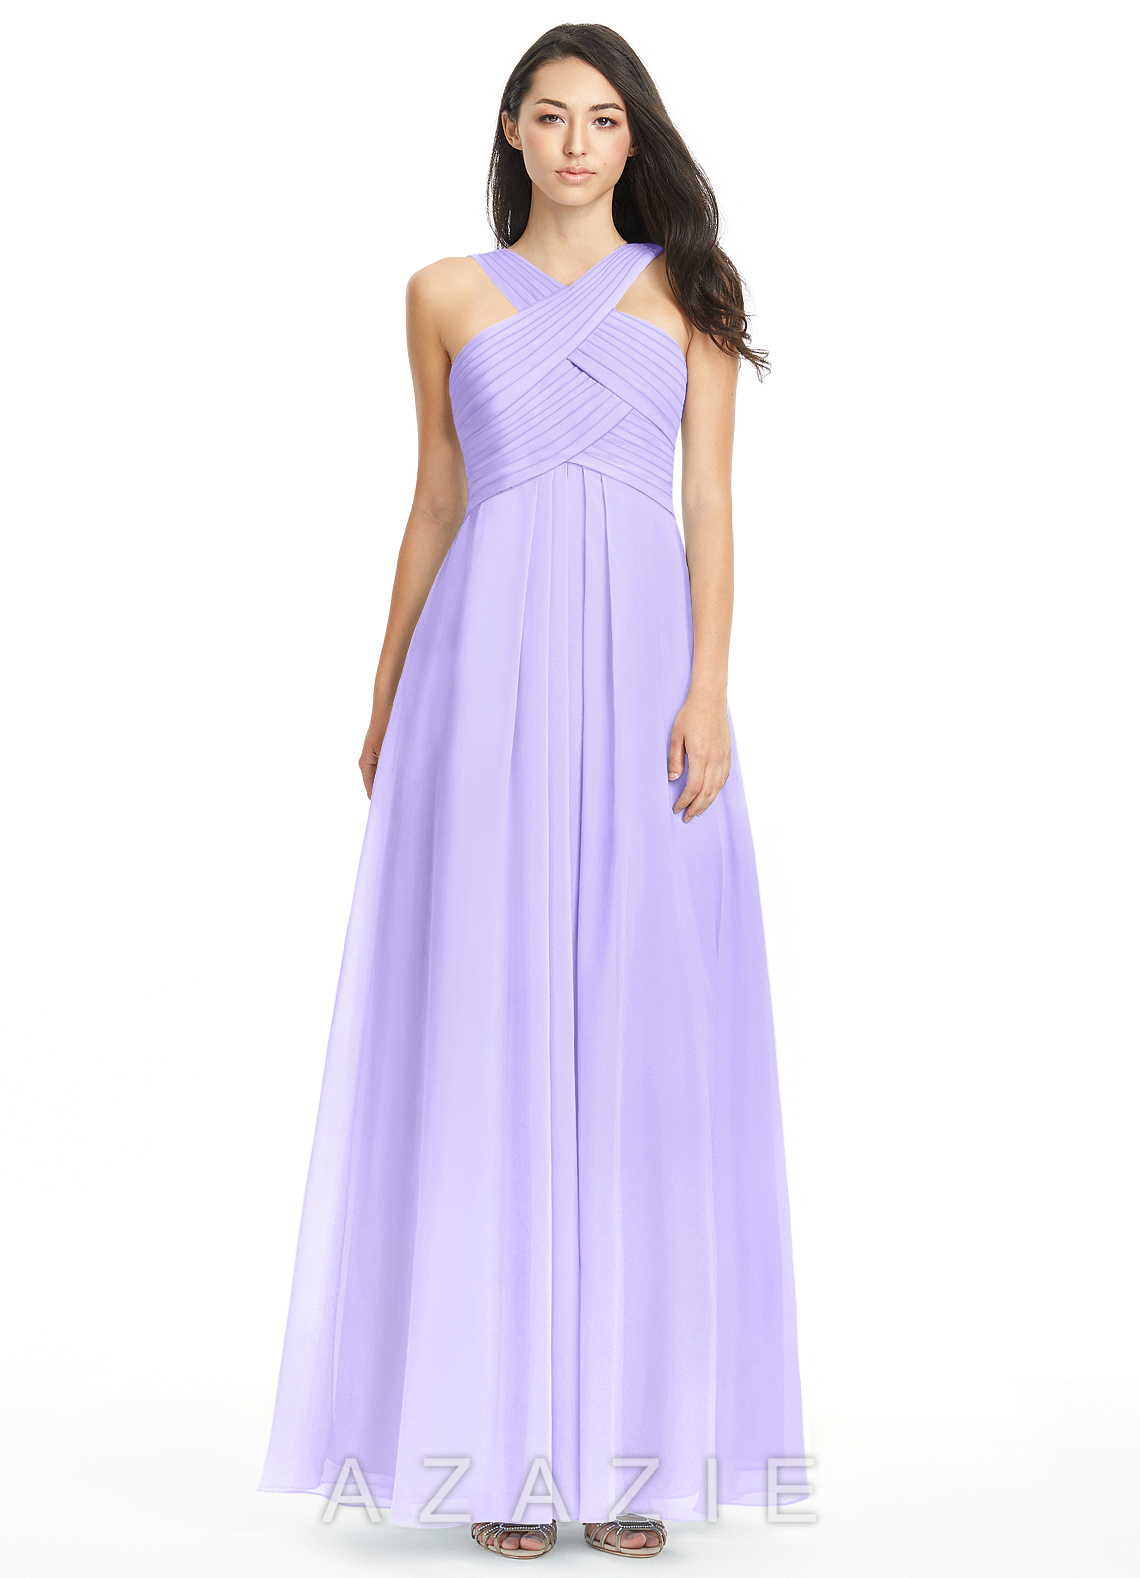 Azazie kaleigh bridesmaid dress azazie color lilac ombrellifo Images